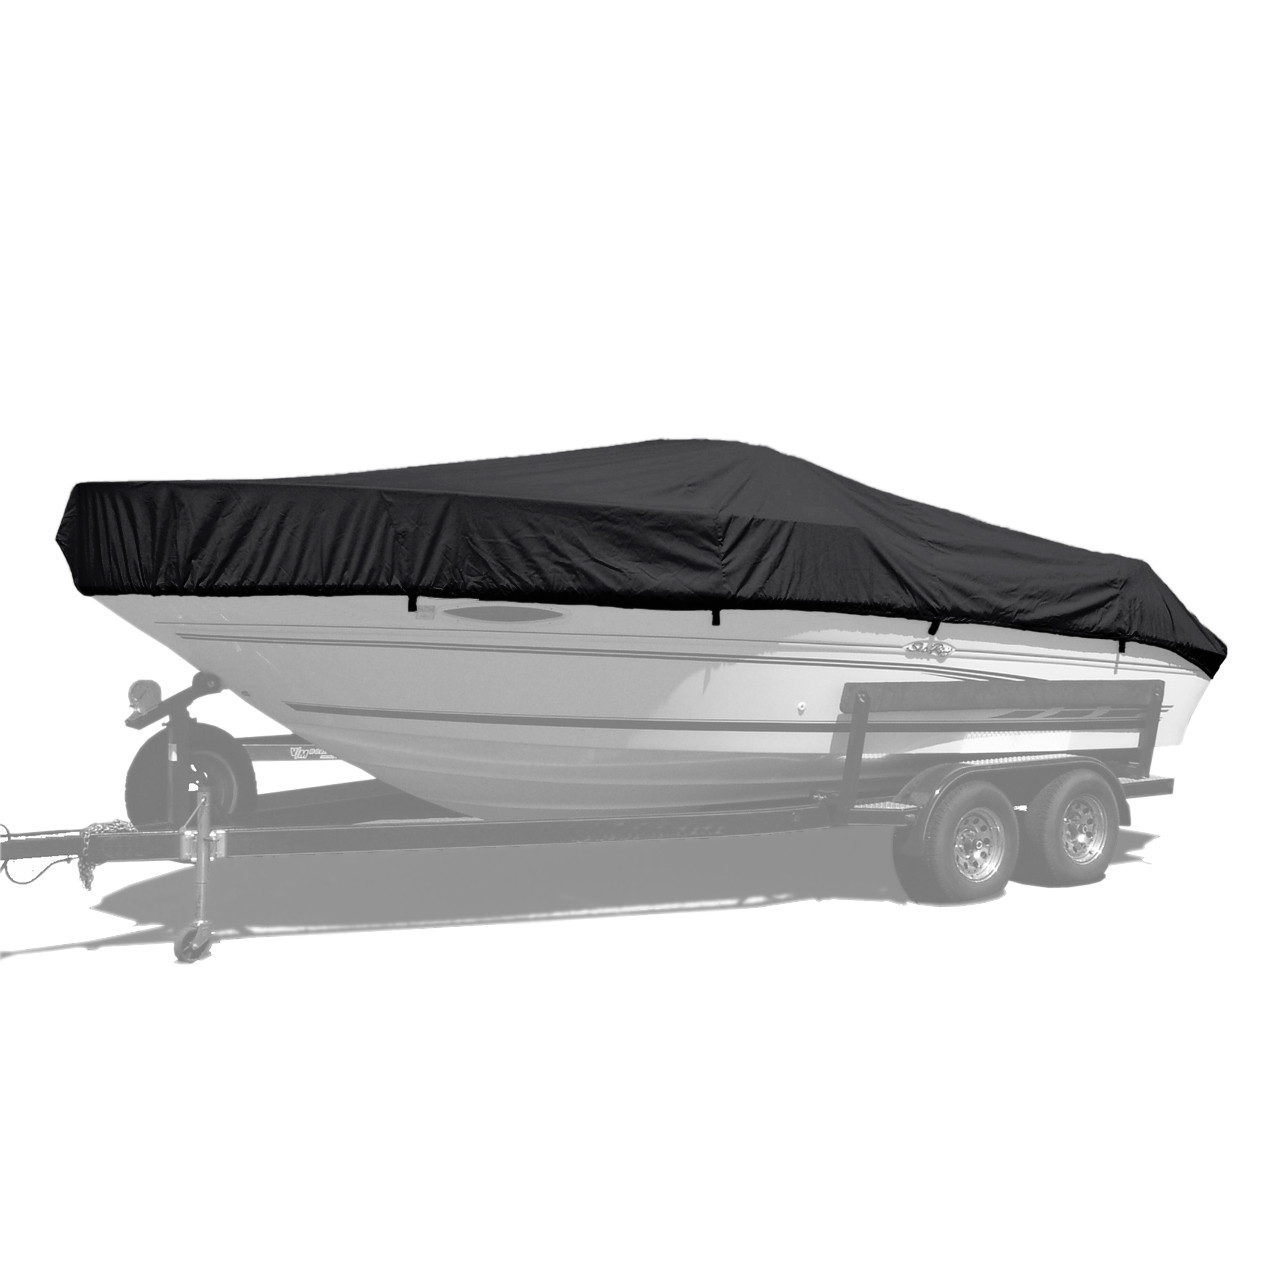 NEW BOAT COVER SEA RAY 180 BOW RIDER 1994-1995